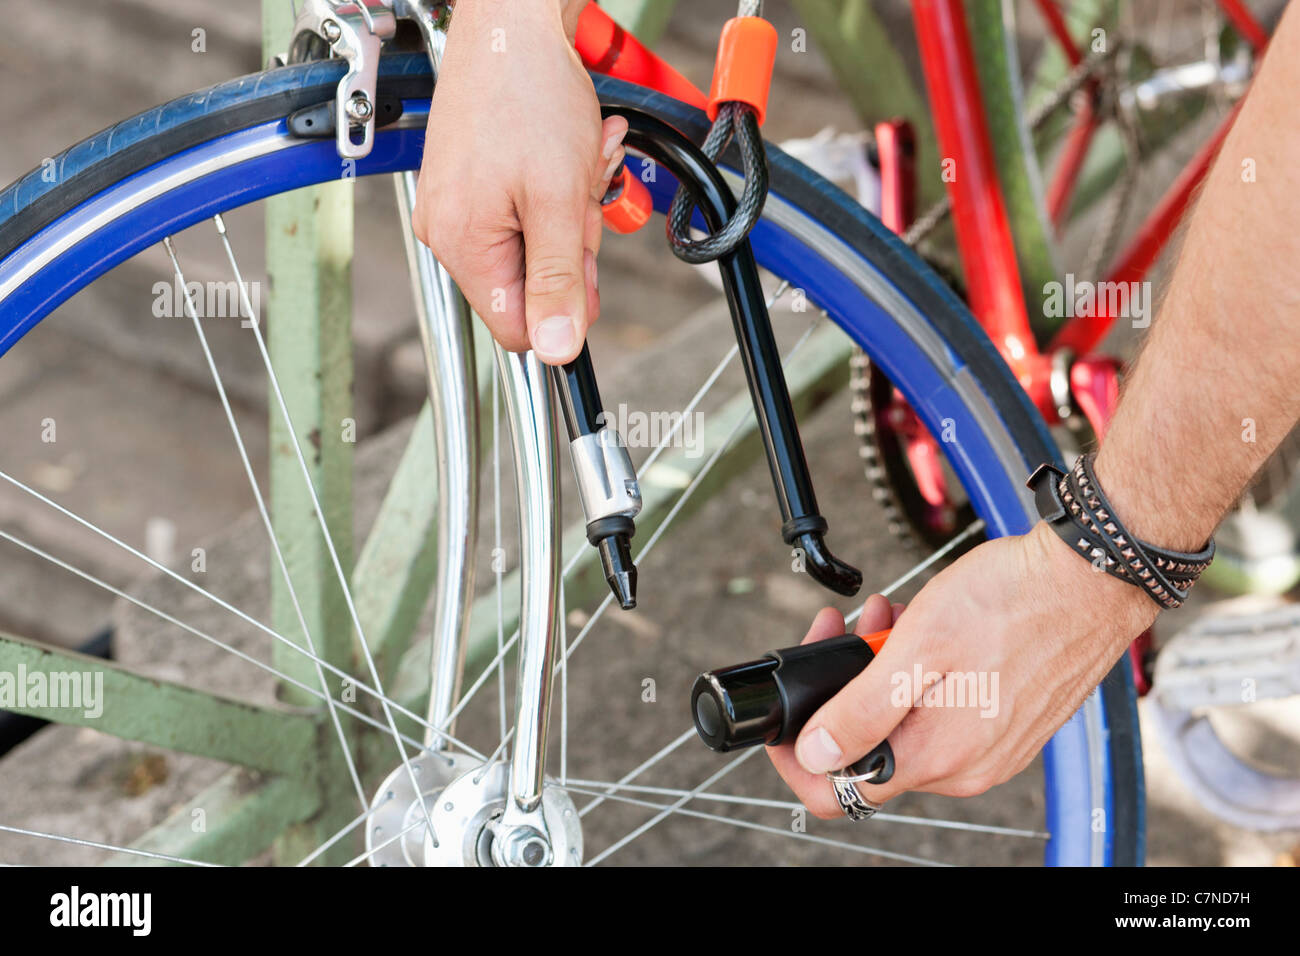 Close-up of a man's hands locking his bicycle, Paris, Ile-de-France, France - Stock Image